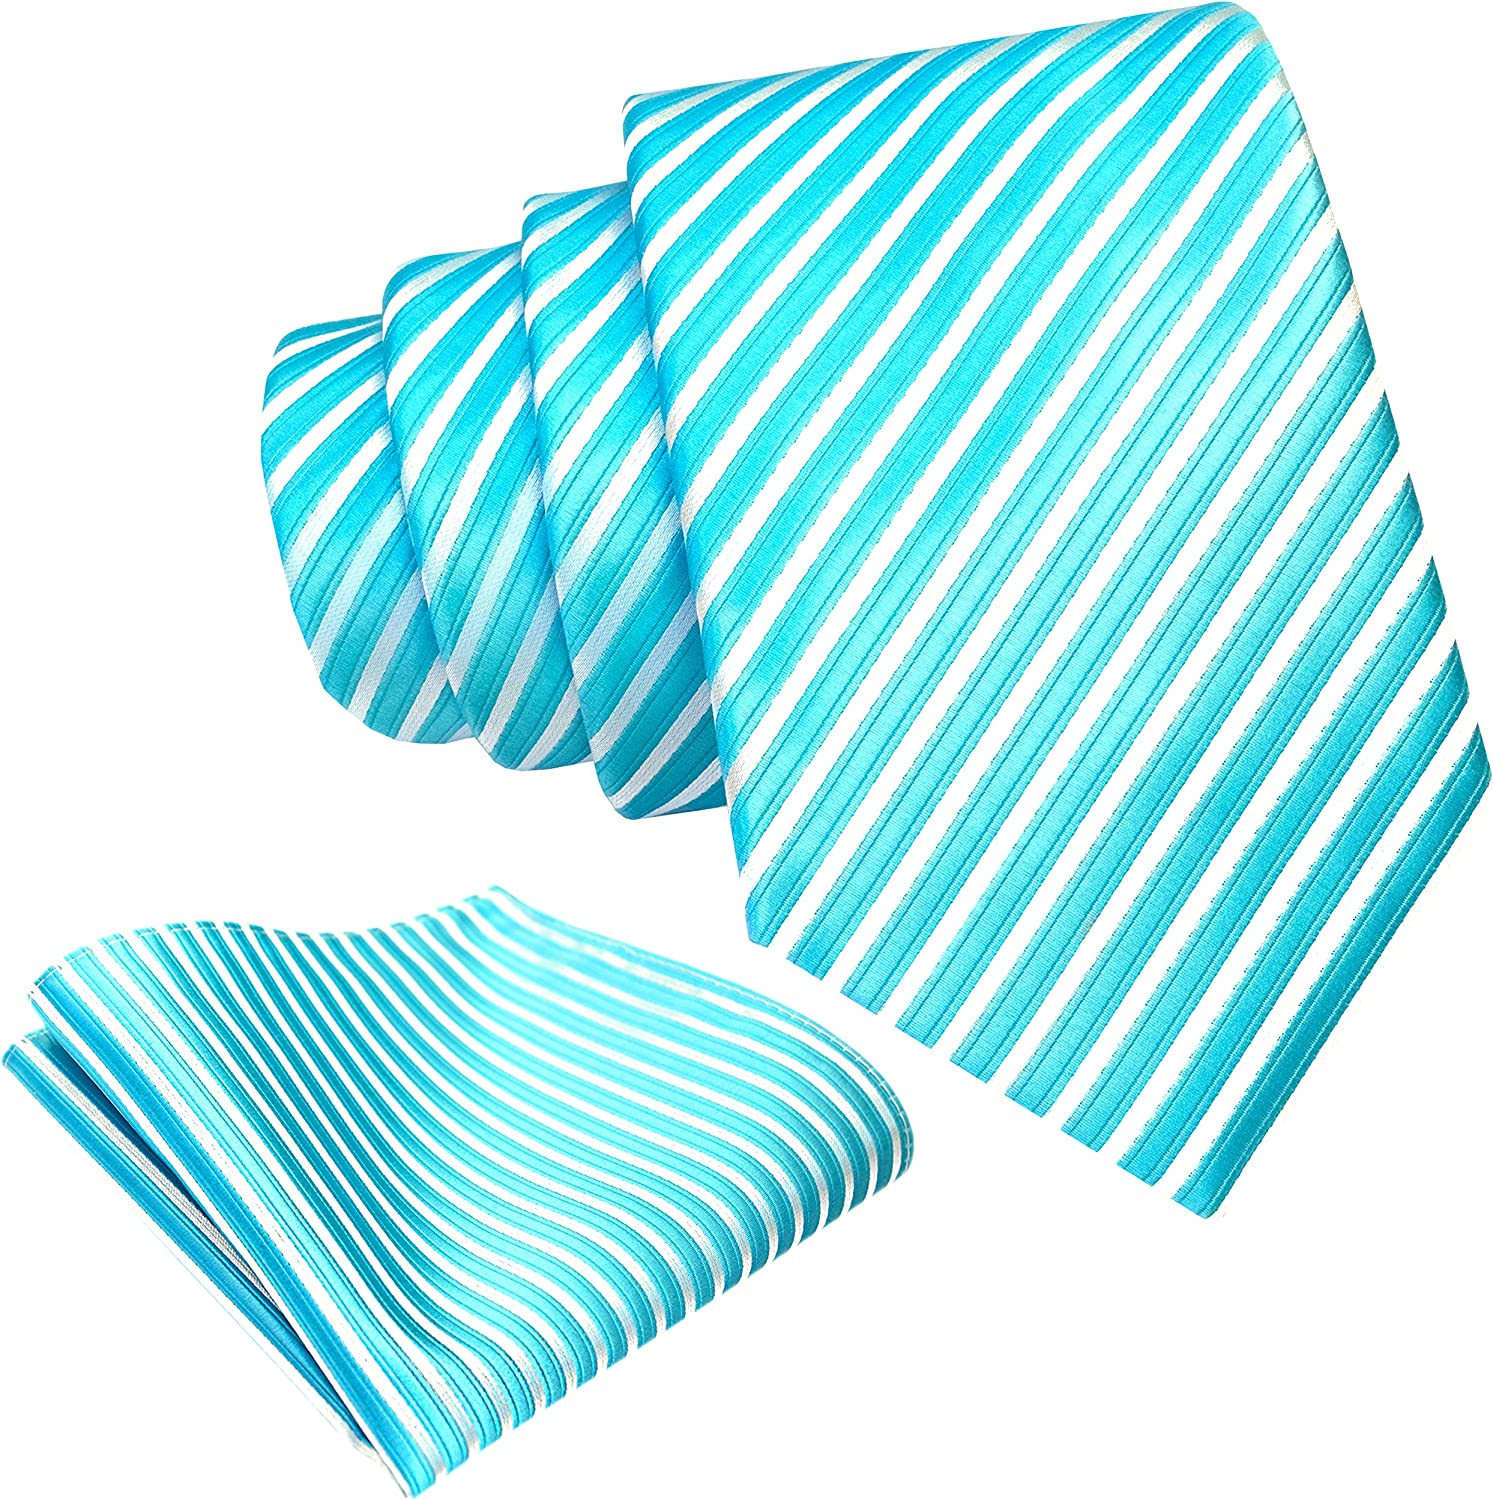 Mens Necktie Set - Neck Tie and Pocket Square Set - Assortment of Colors and Patterns